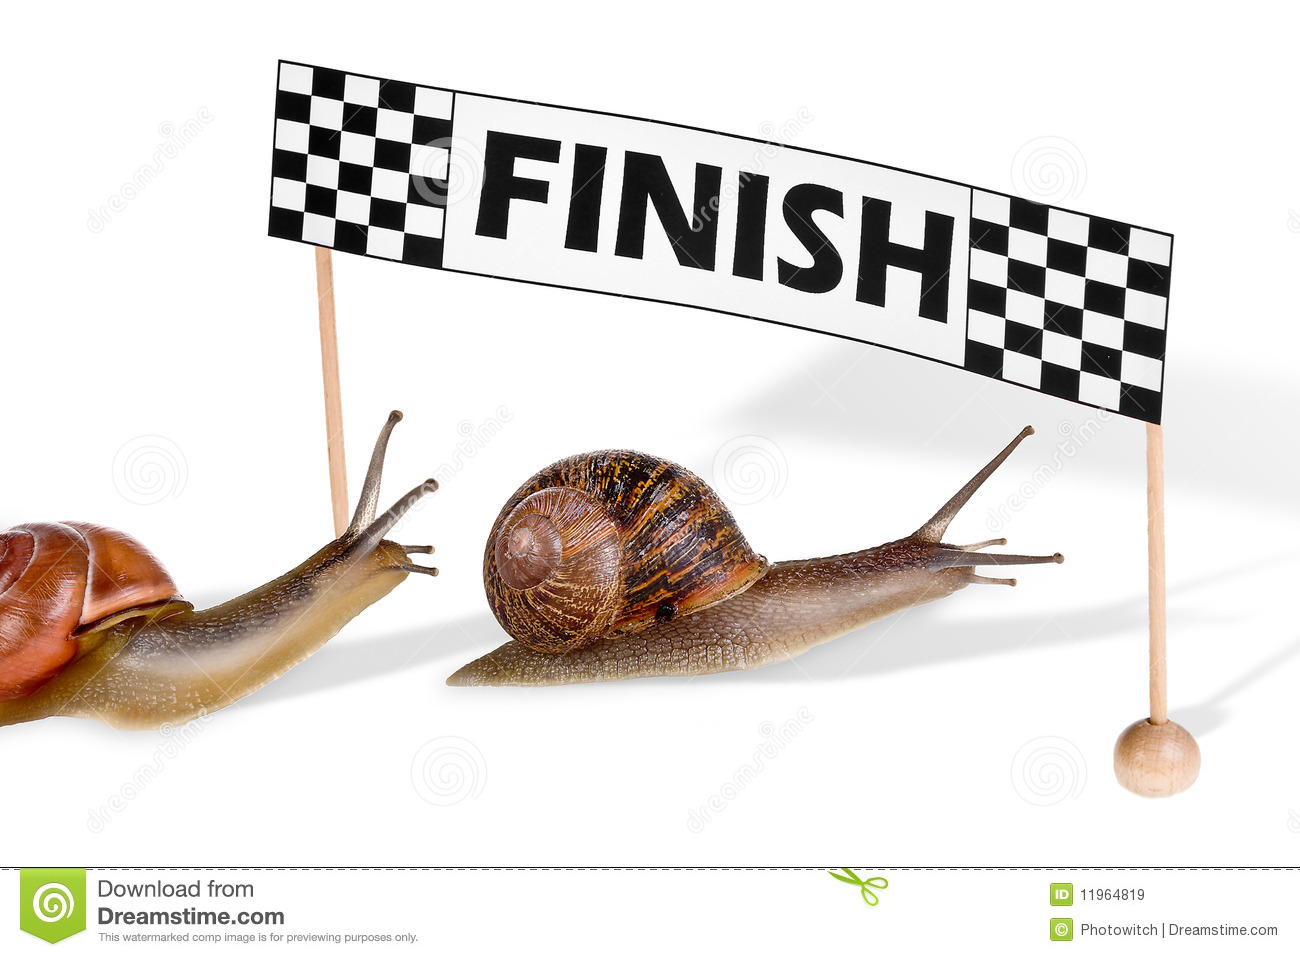 Race Track Wall Art >> Snail race clipart - Clipground